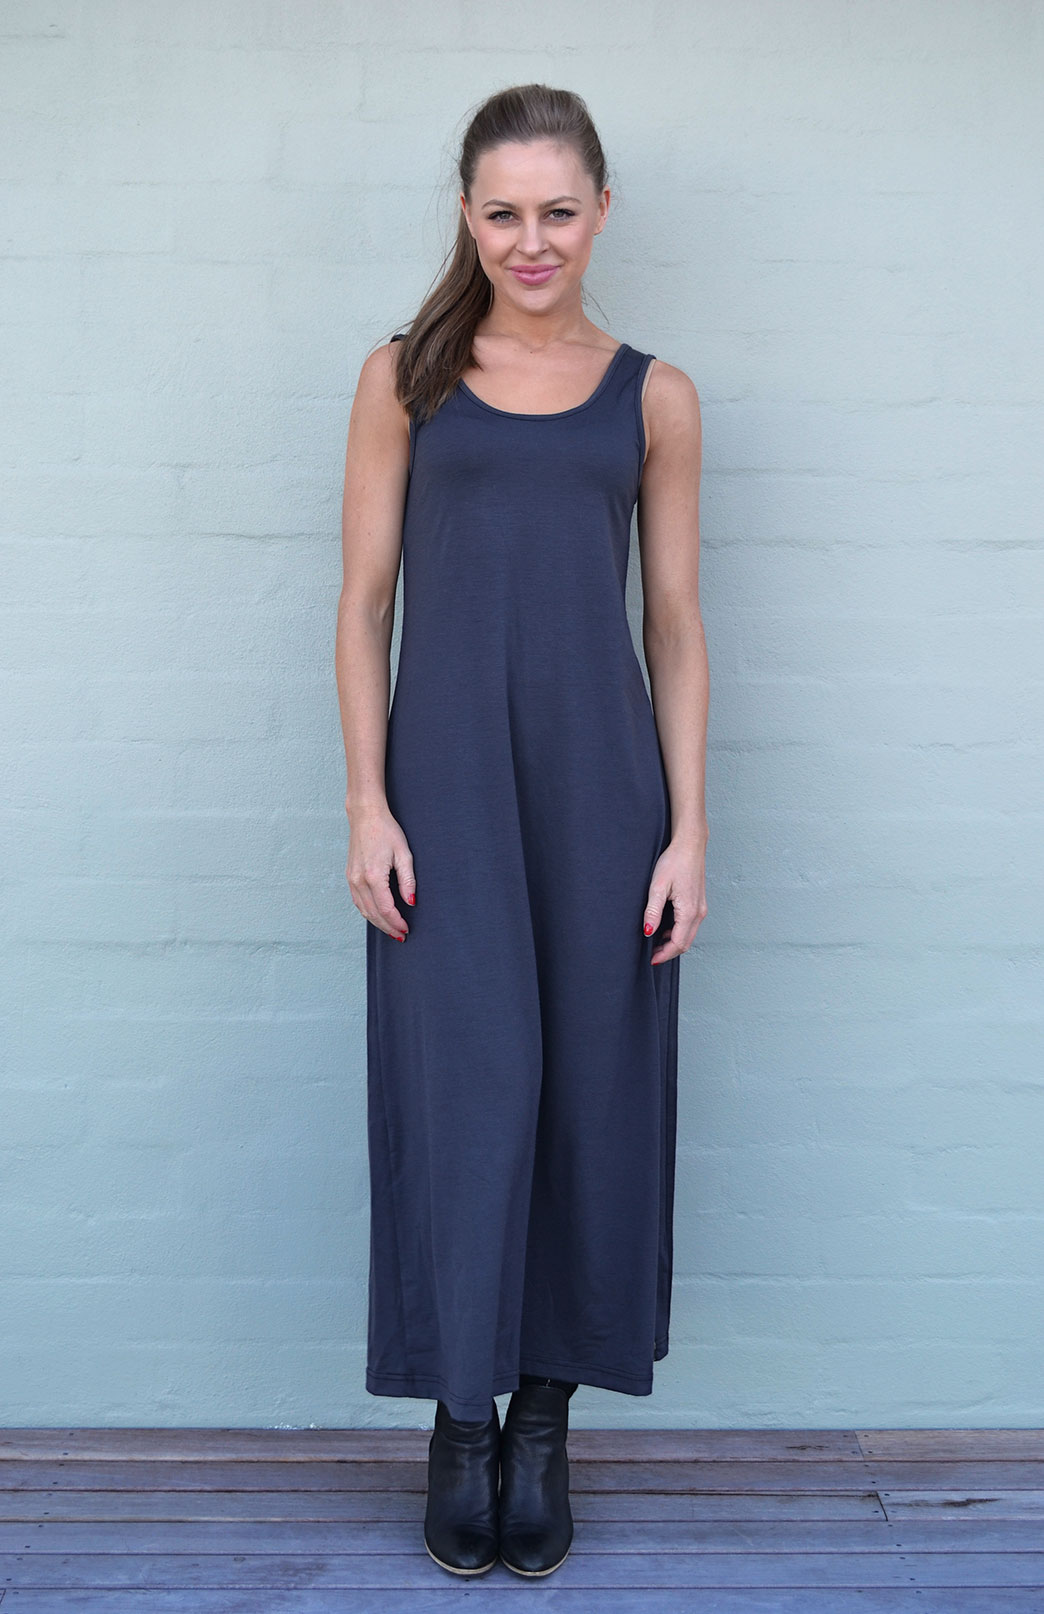 Maxi Dress - Plain - Women's Merino Wool Steel Grey Maxi Dress with Scoop Neckline - Smitten Merino Tasmania Australia